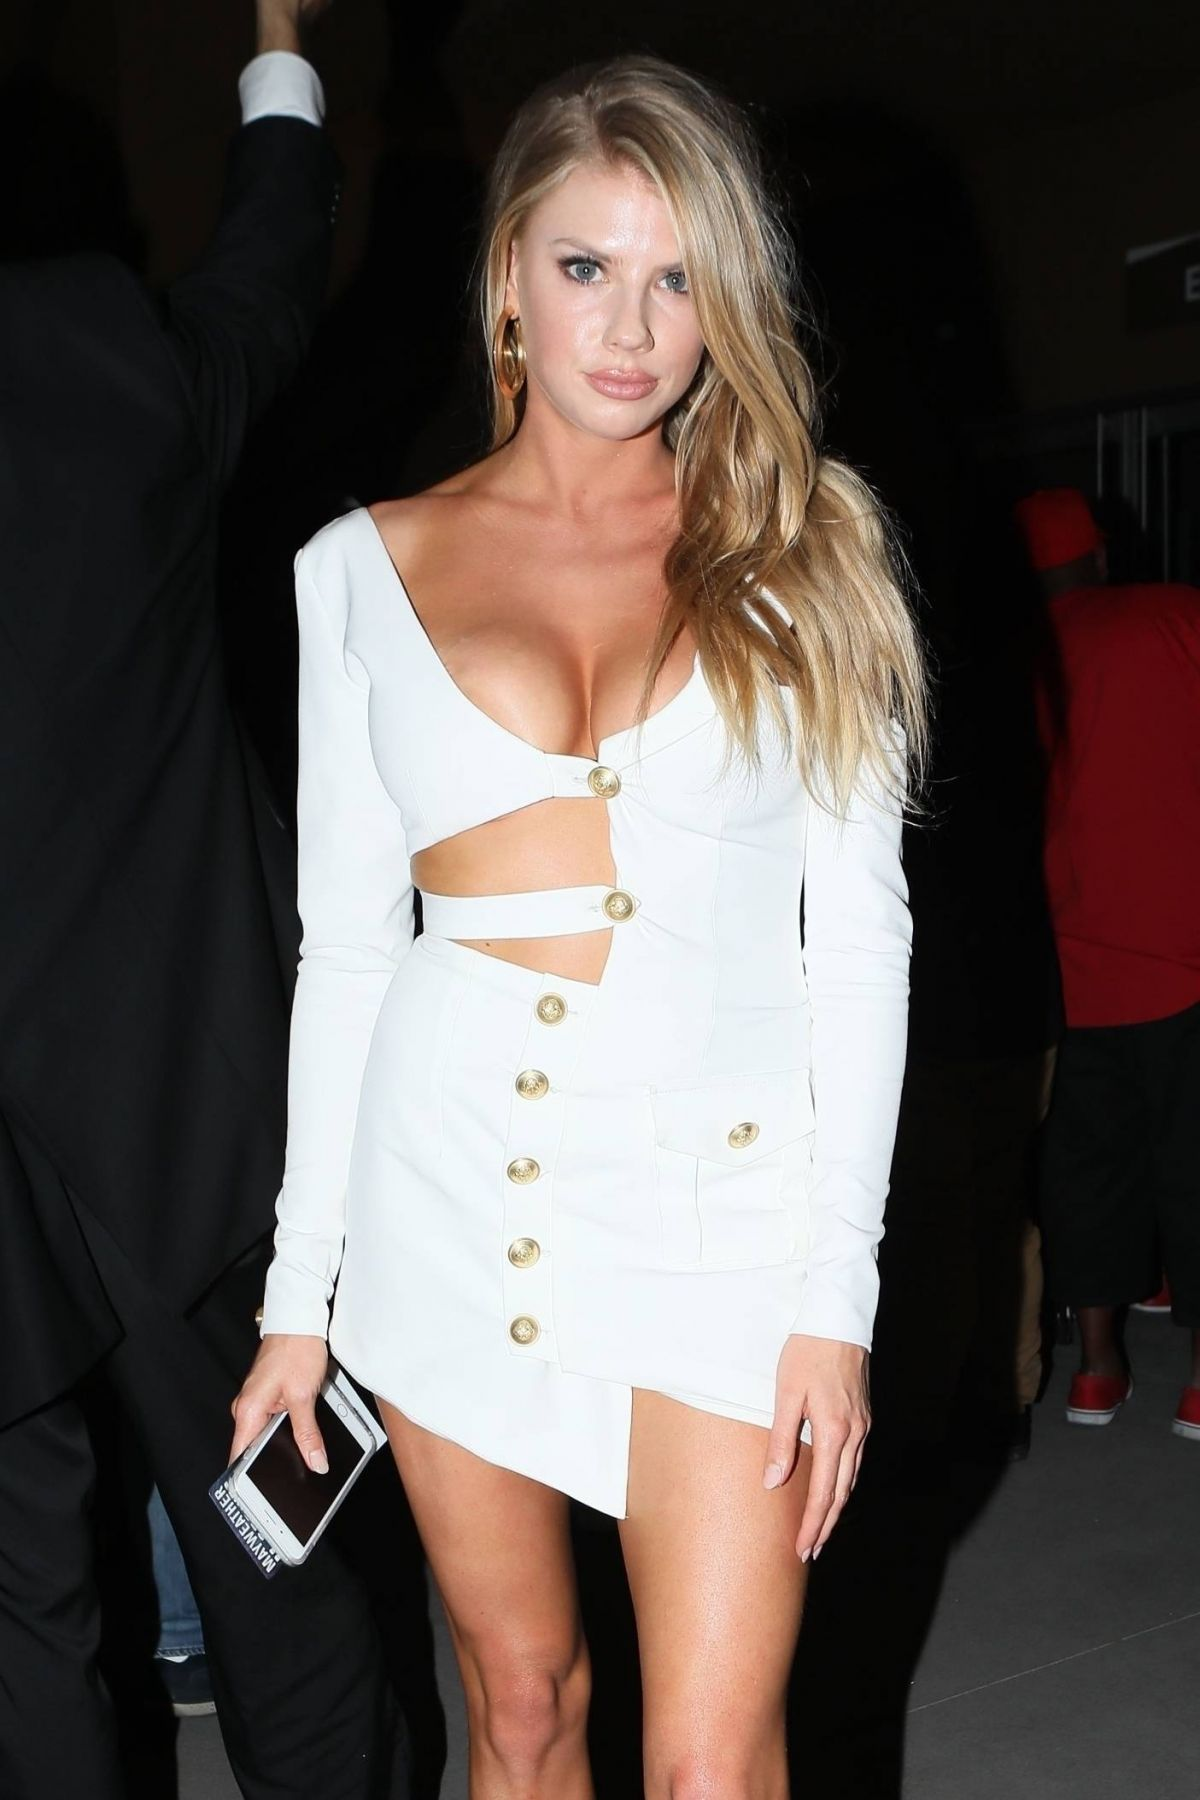 CHARLOTTE MCKINNEY at Floyd Mayweather vs. Conor McGregor Fight in Las Vegas 08/26/2017